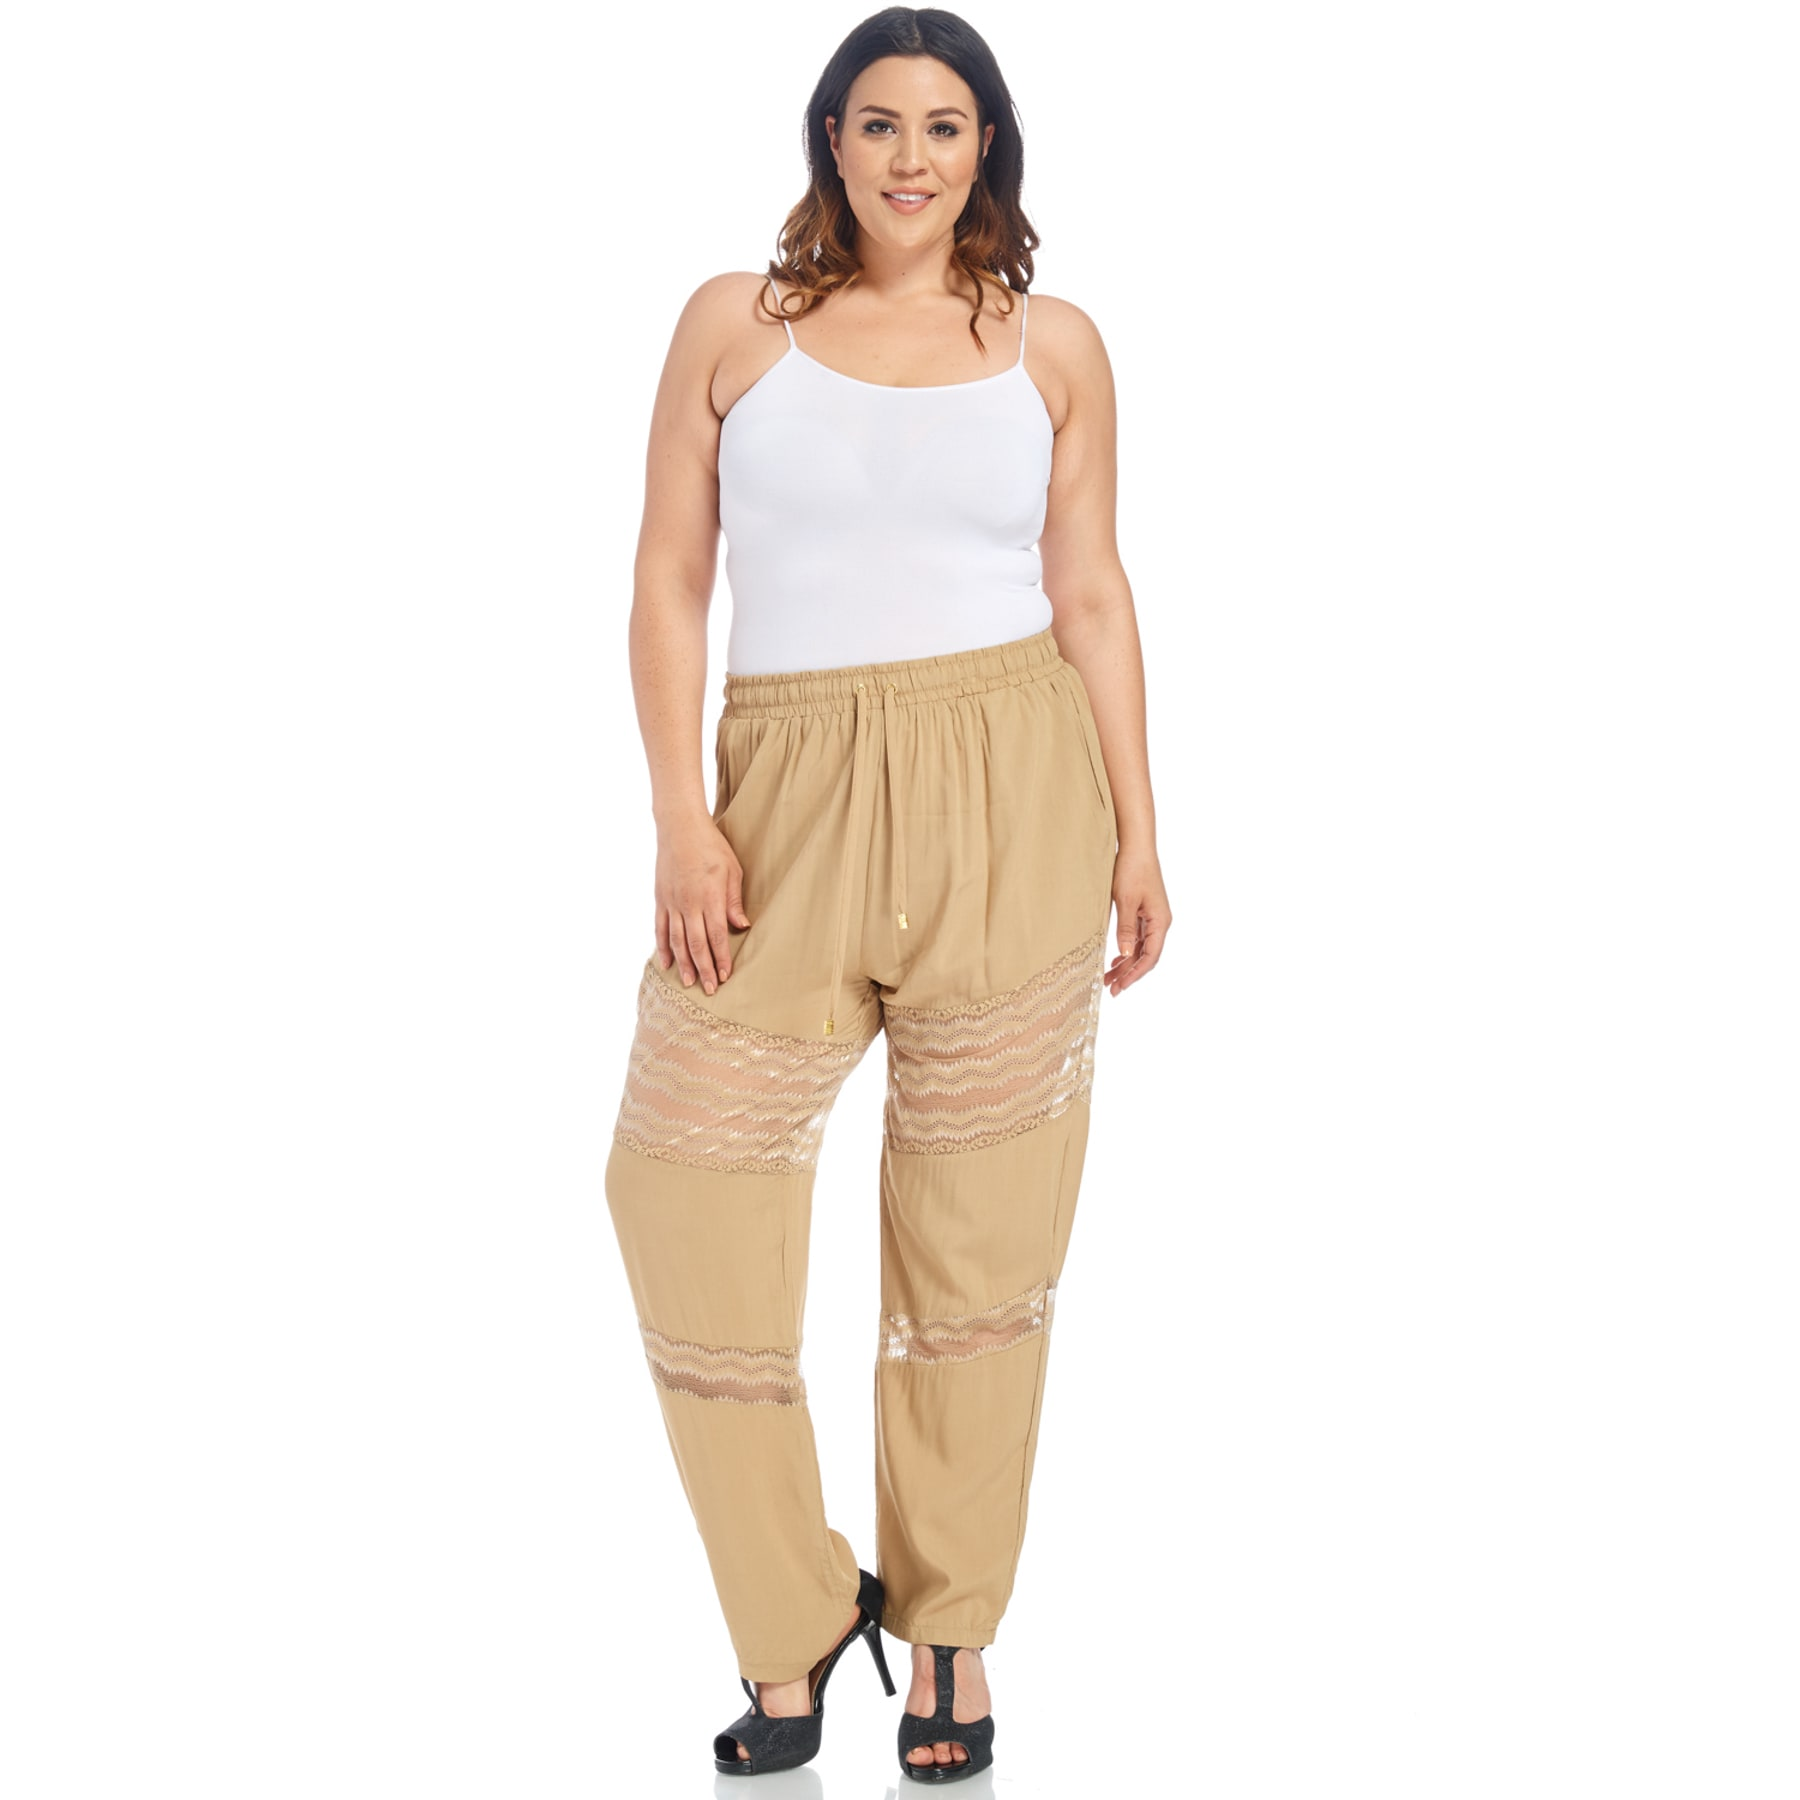 40524caf9d8 Xehar Women s Plus Size Stylish Elastic Relaxed Lace Fit Pants - Free  Shipping On Orders Over  45 - Overstock - 21523216